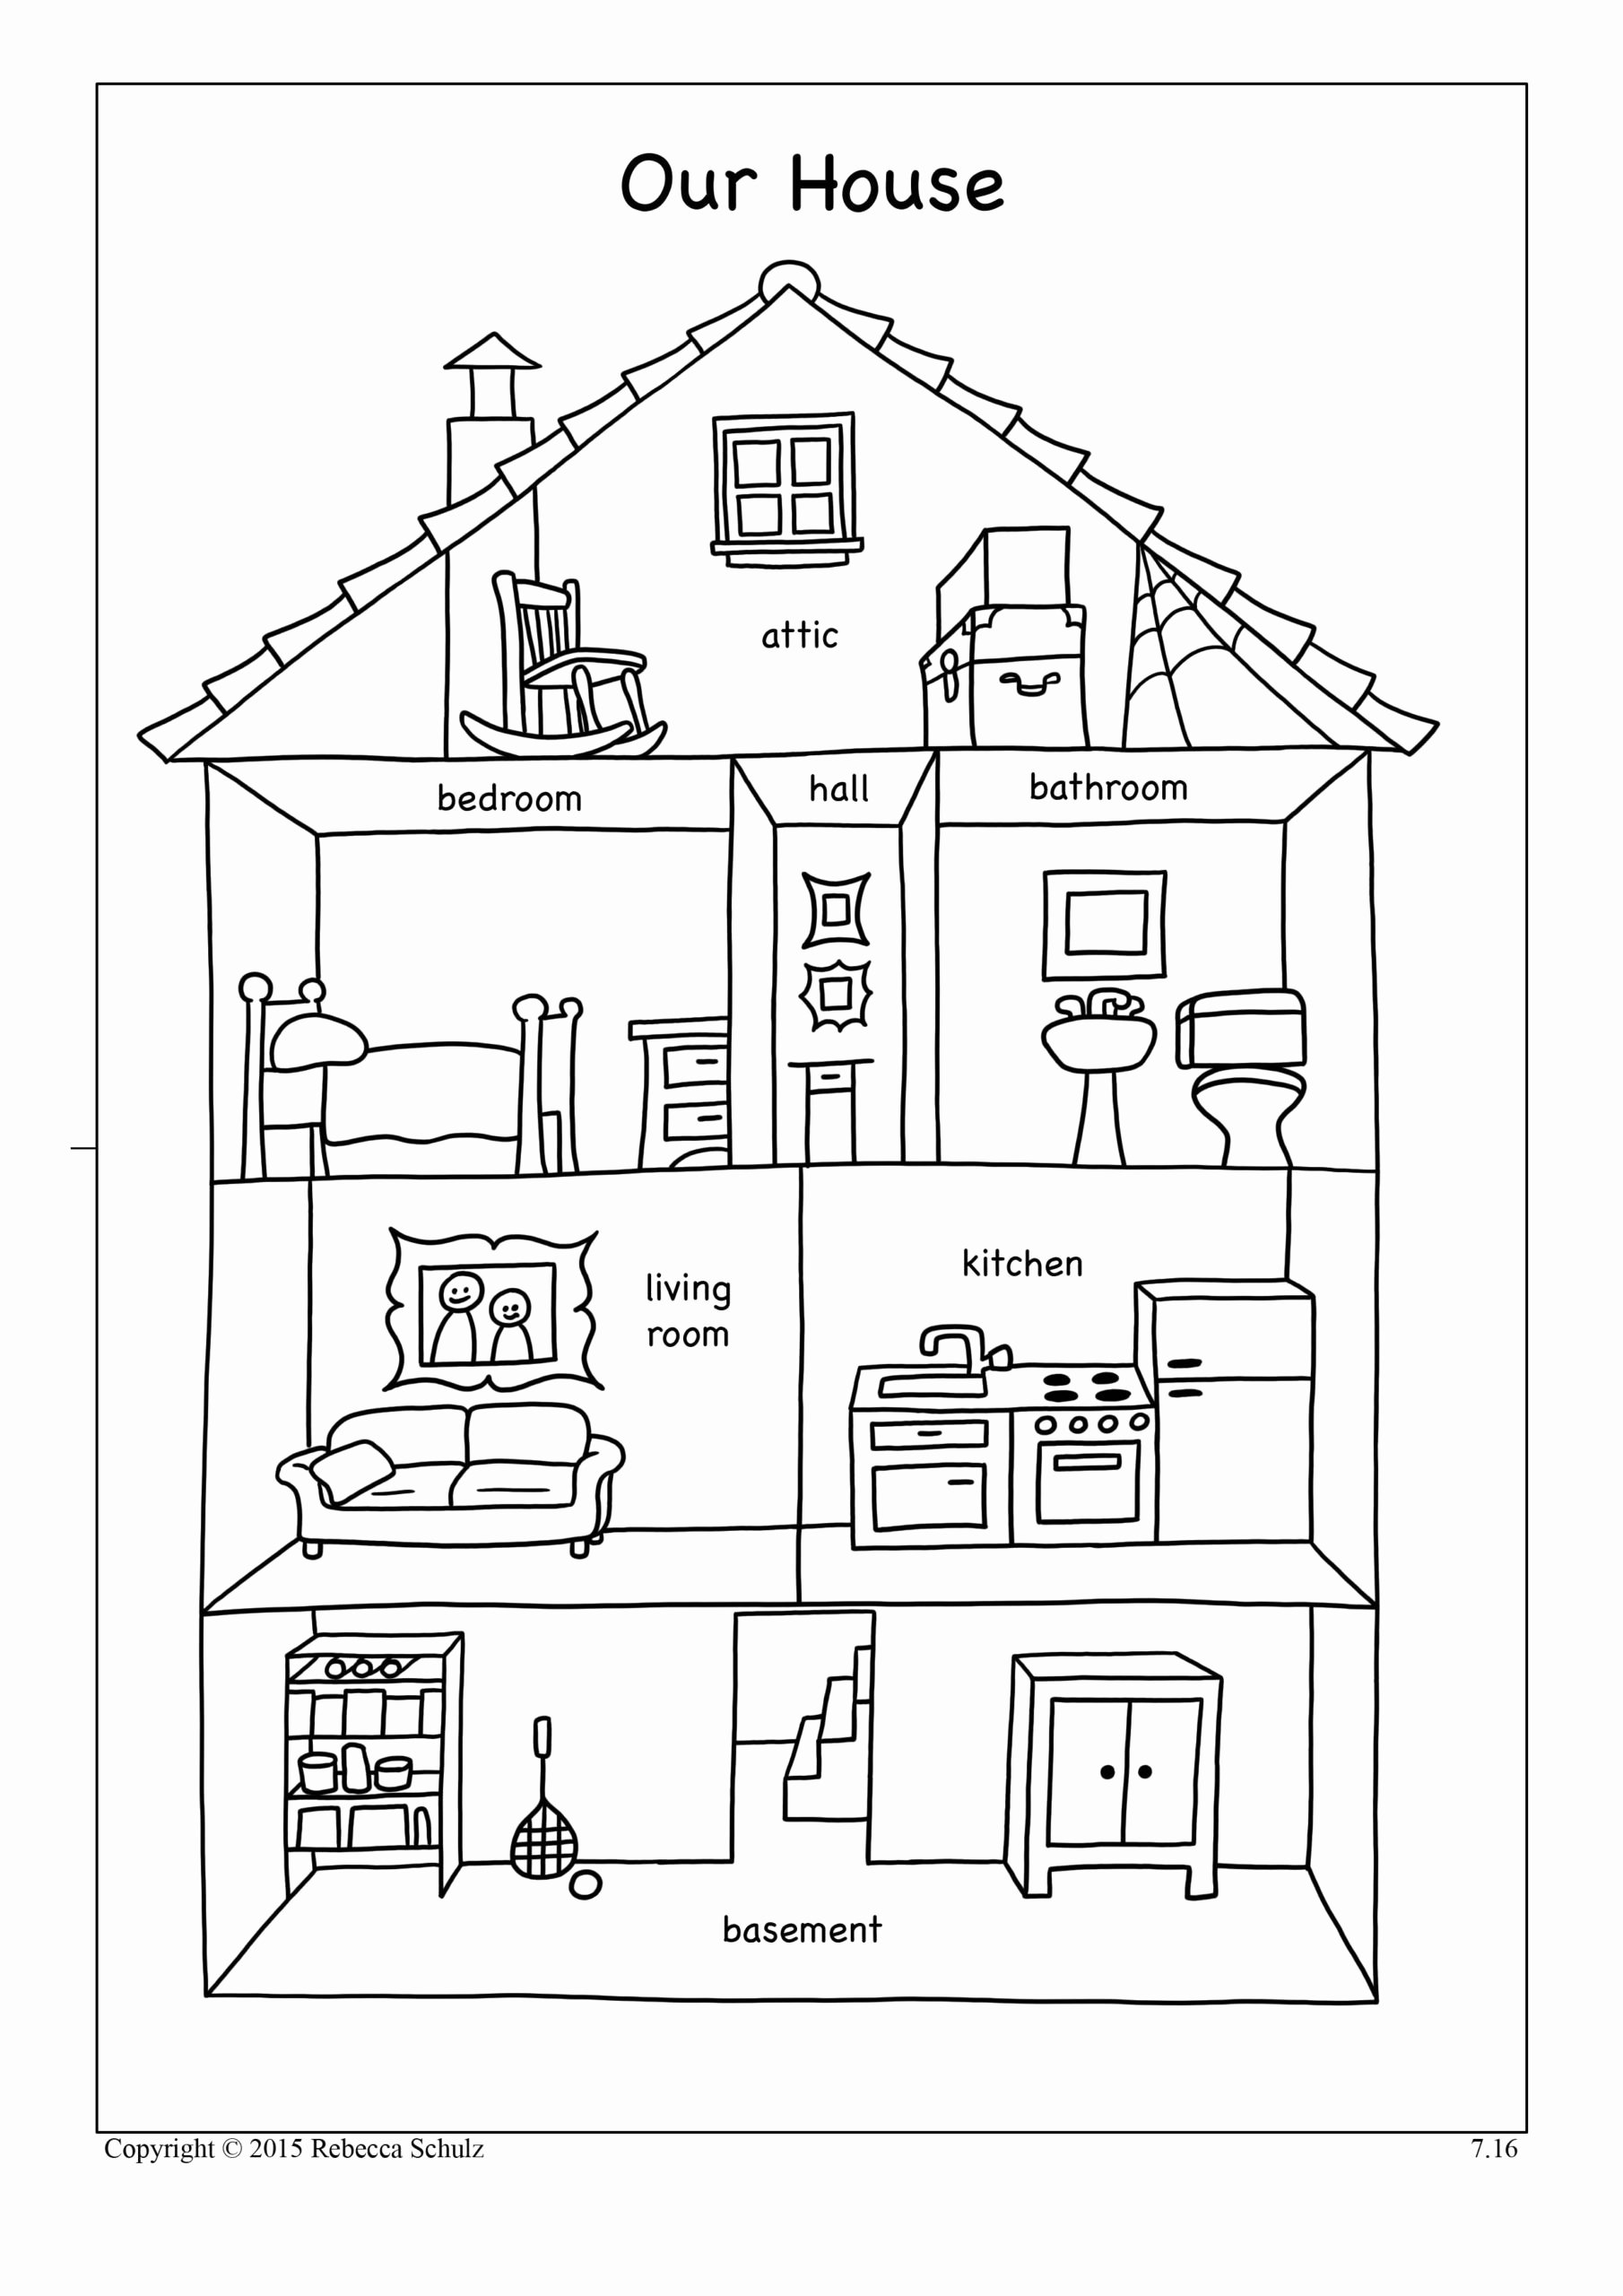 Parts Of the House Worksheets for Preschoolers Printable Resultado Imagen Para Worksheets Parts the House Con